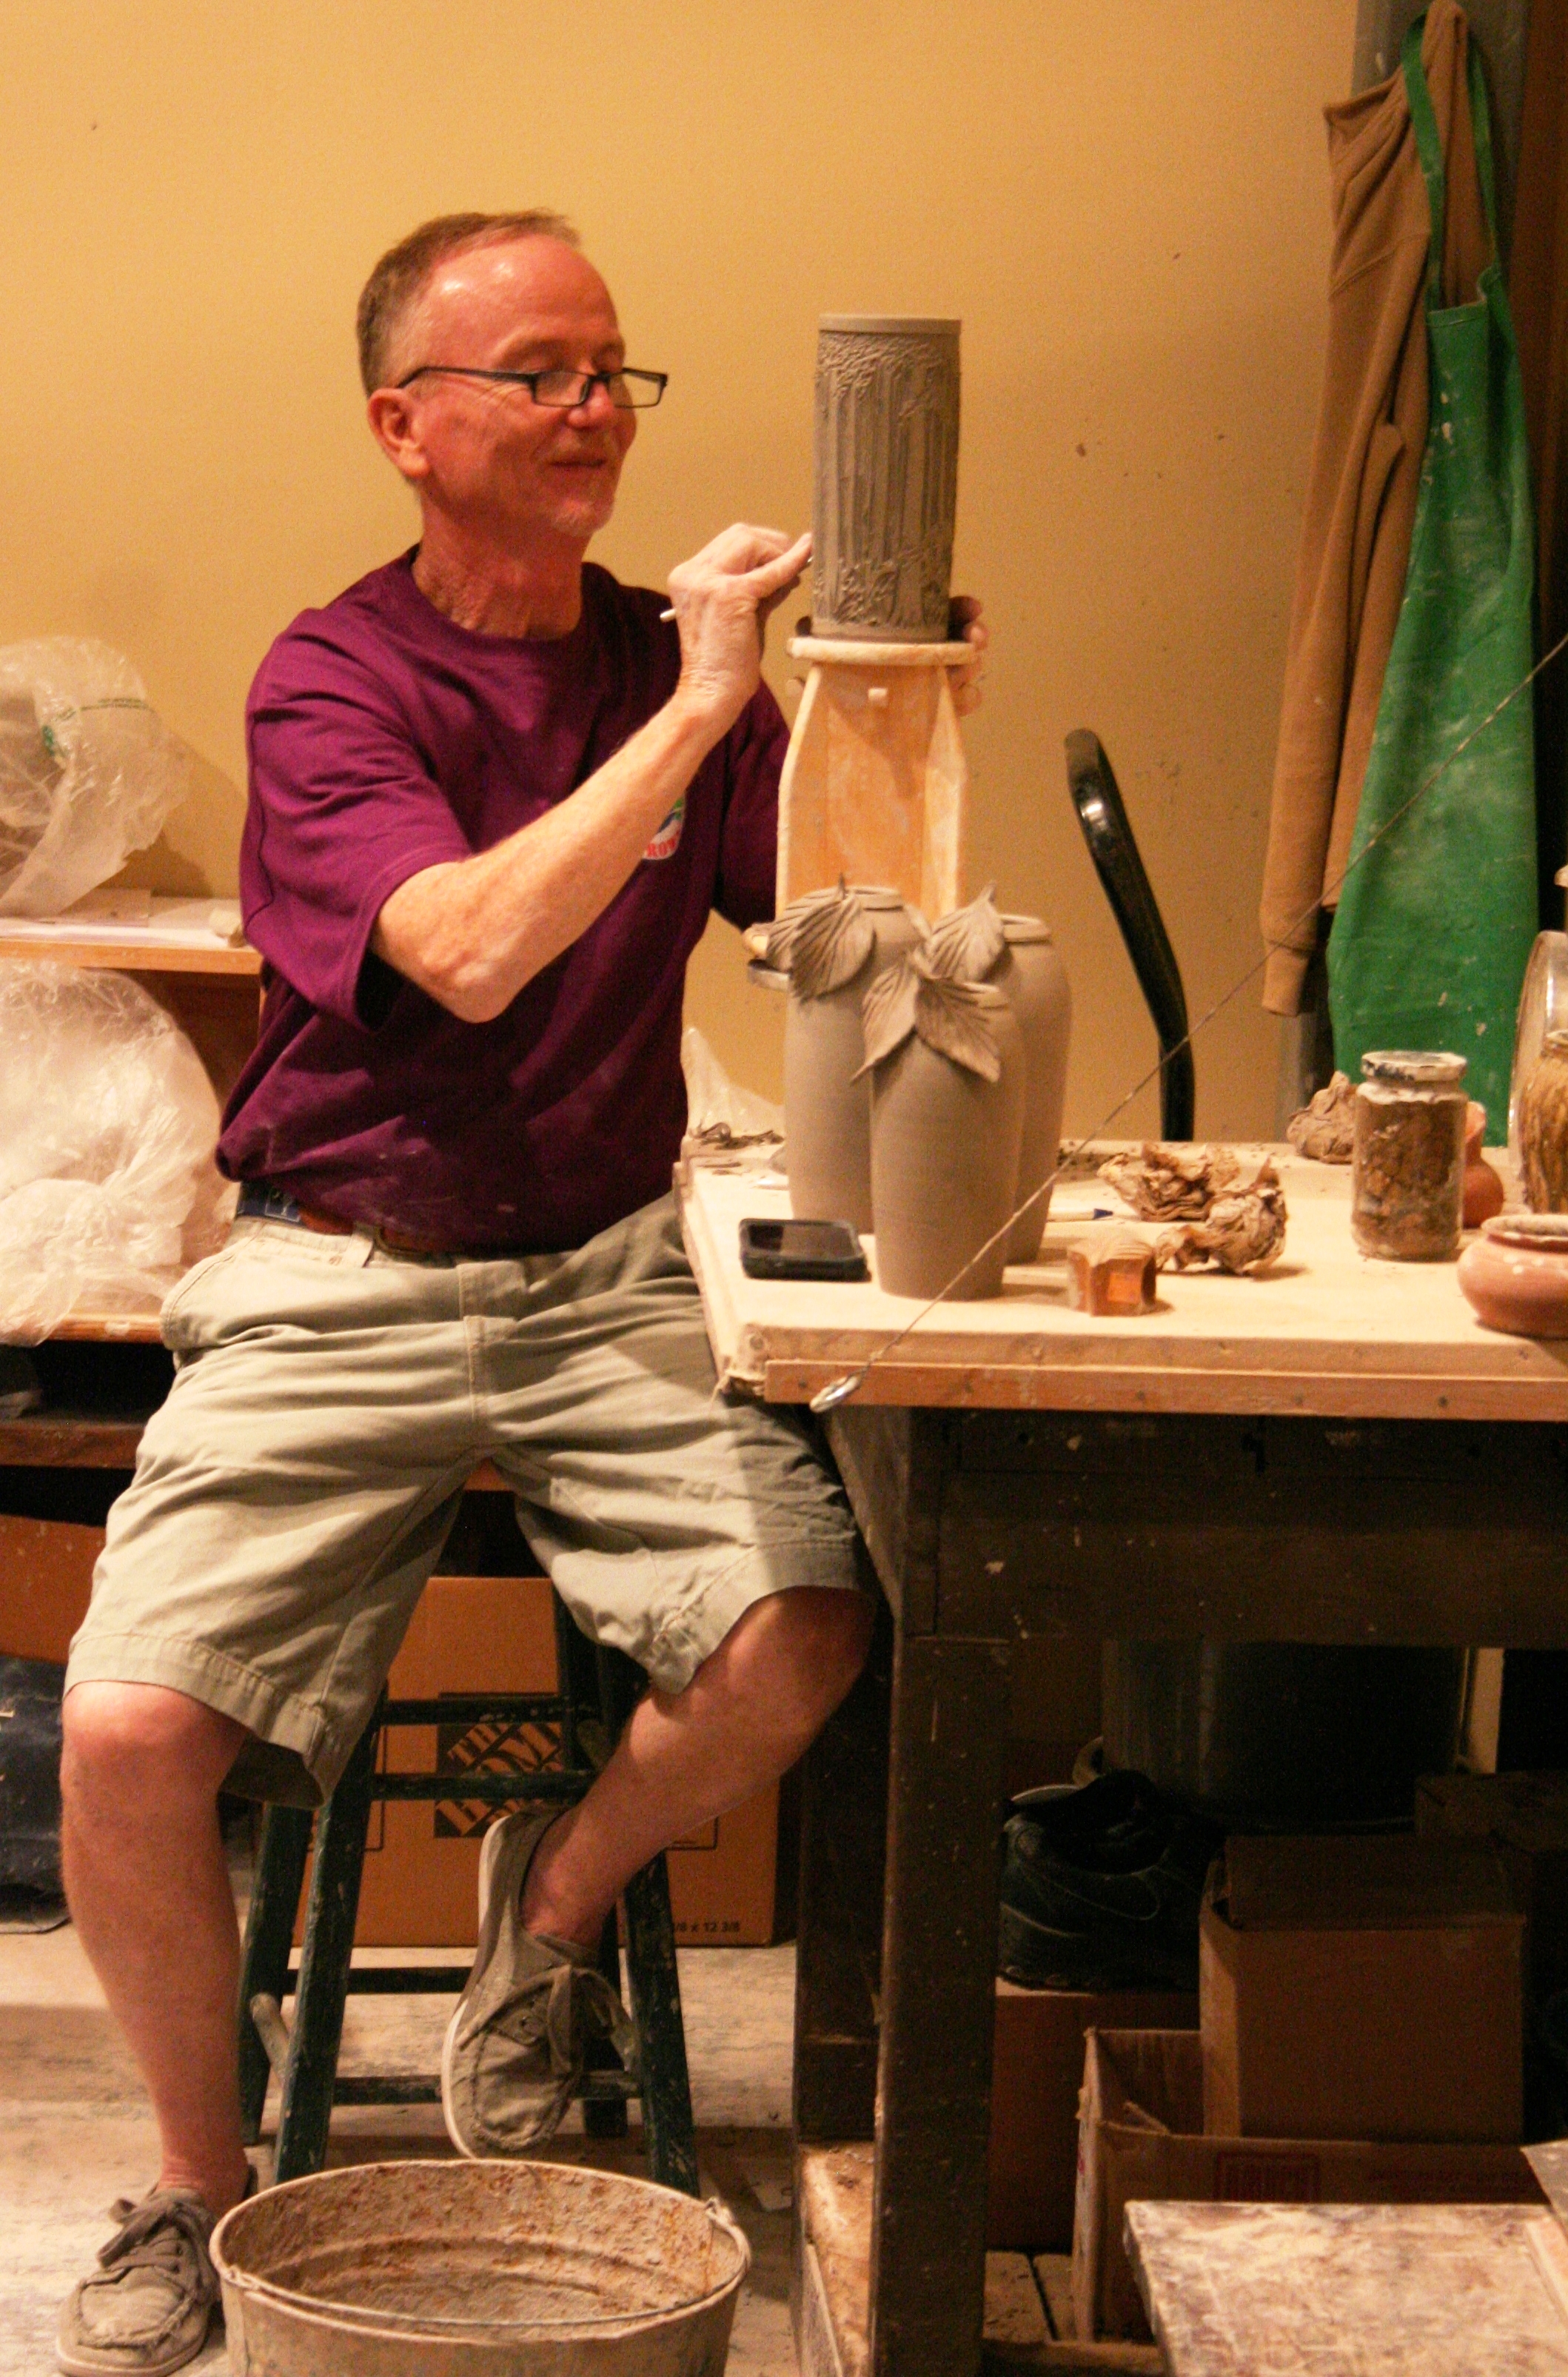 South Carolina art and artists, like Paul Moore (pictured), will be featured with an exceptional day of hands-on activities, art demonstrations and much more at Art Day on Saturday, March 1 from 10 a.m. – 4 p.m. at the South Carolina State Museum.  Visit scmuseum.org to learn more. Photo courtesy of the S.C. State Museum